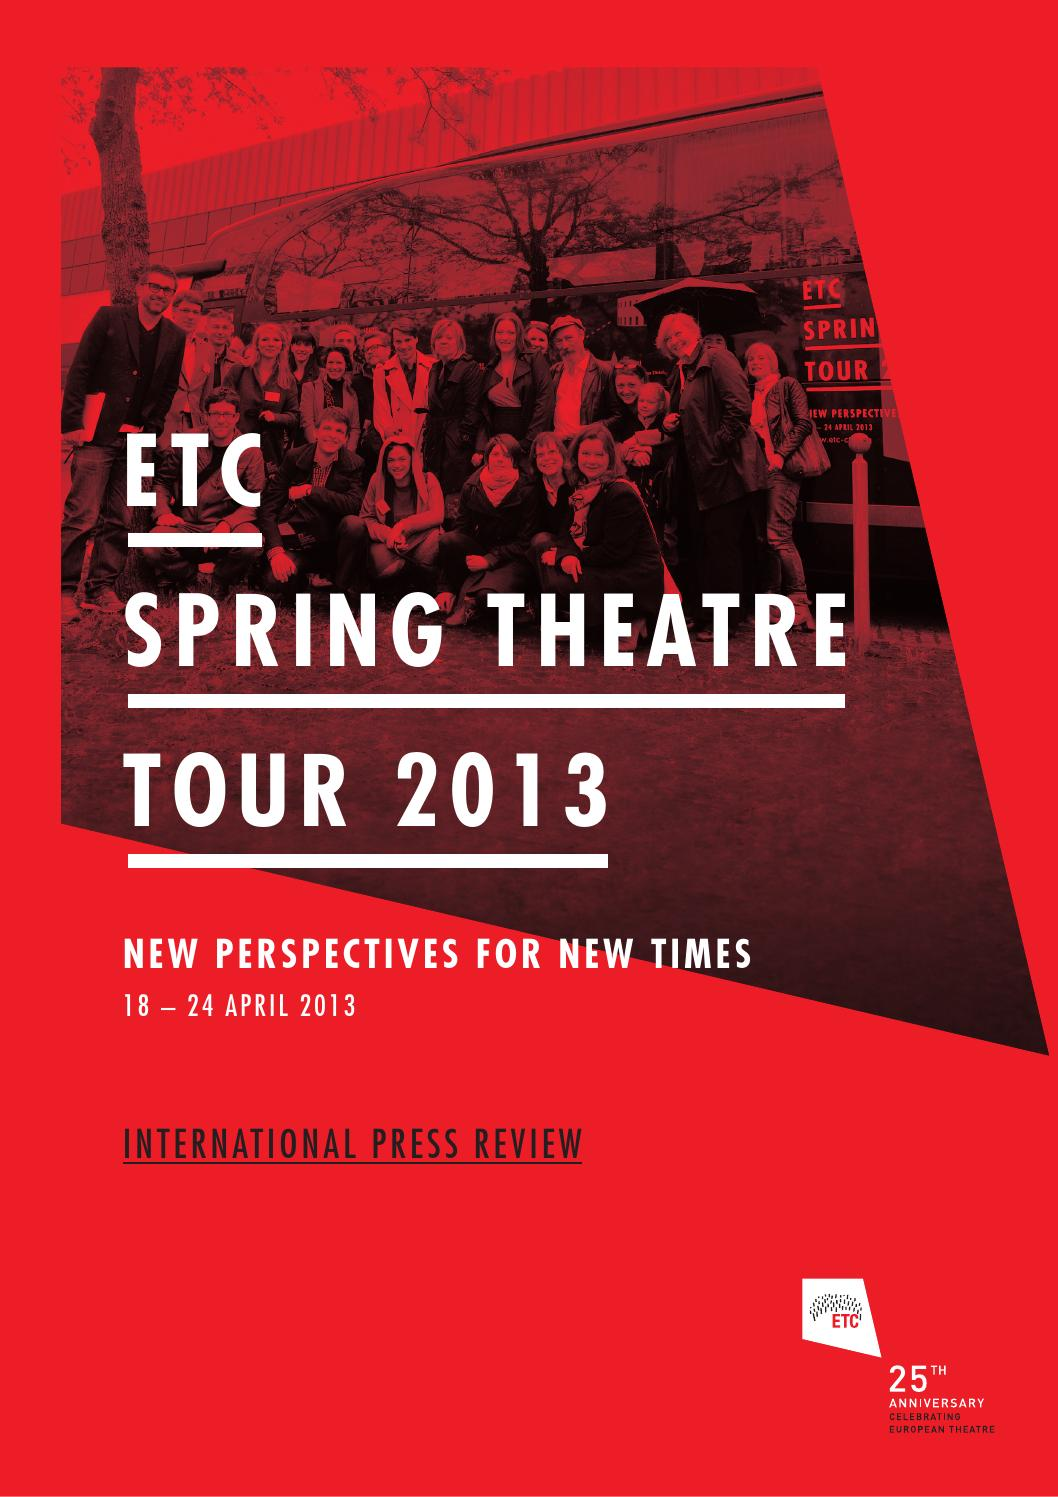 Etc Spring Theatre Tour 2013 Press Review By European